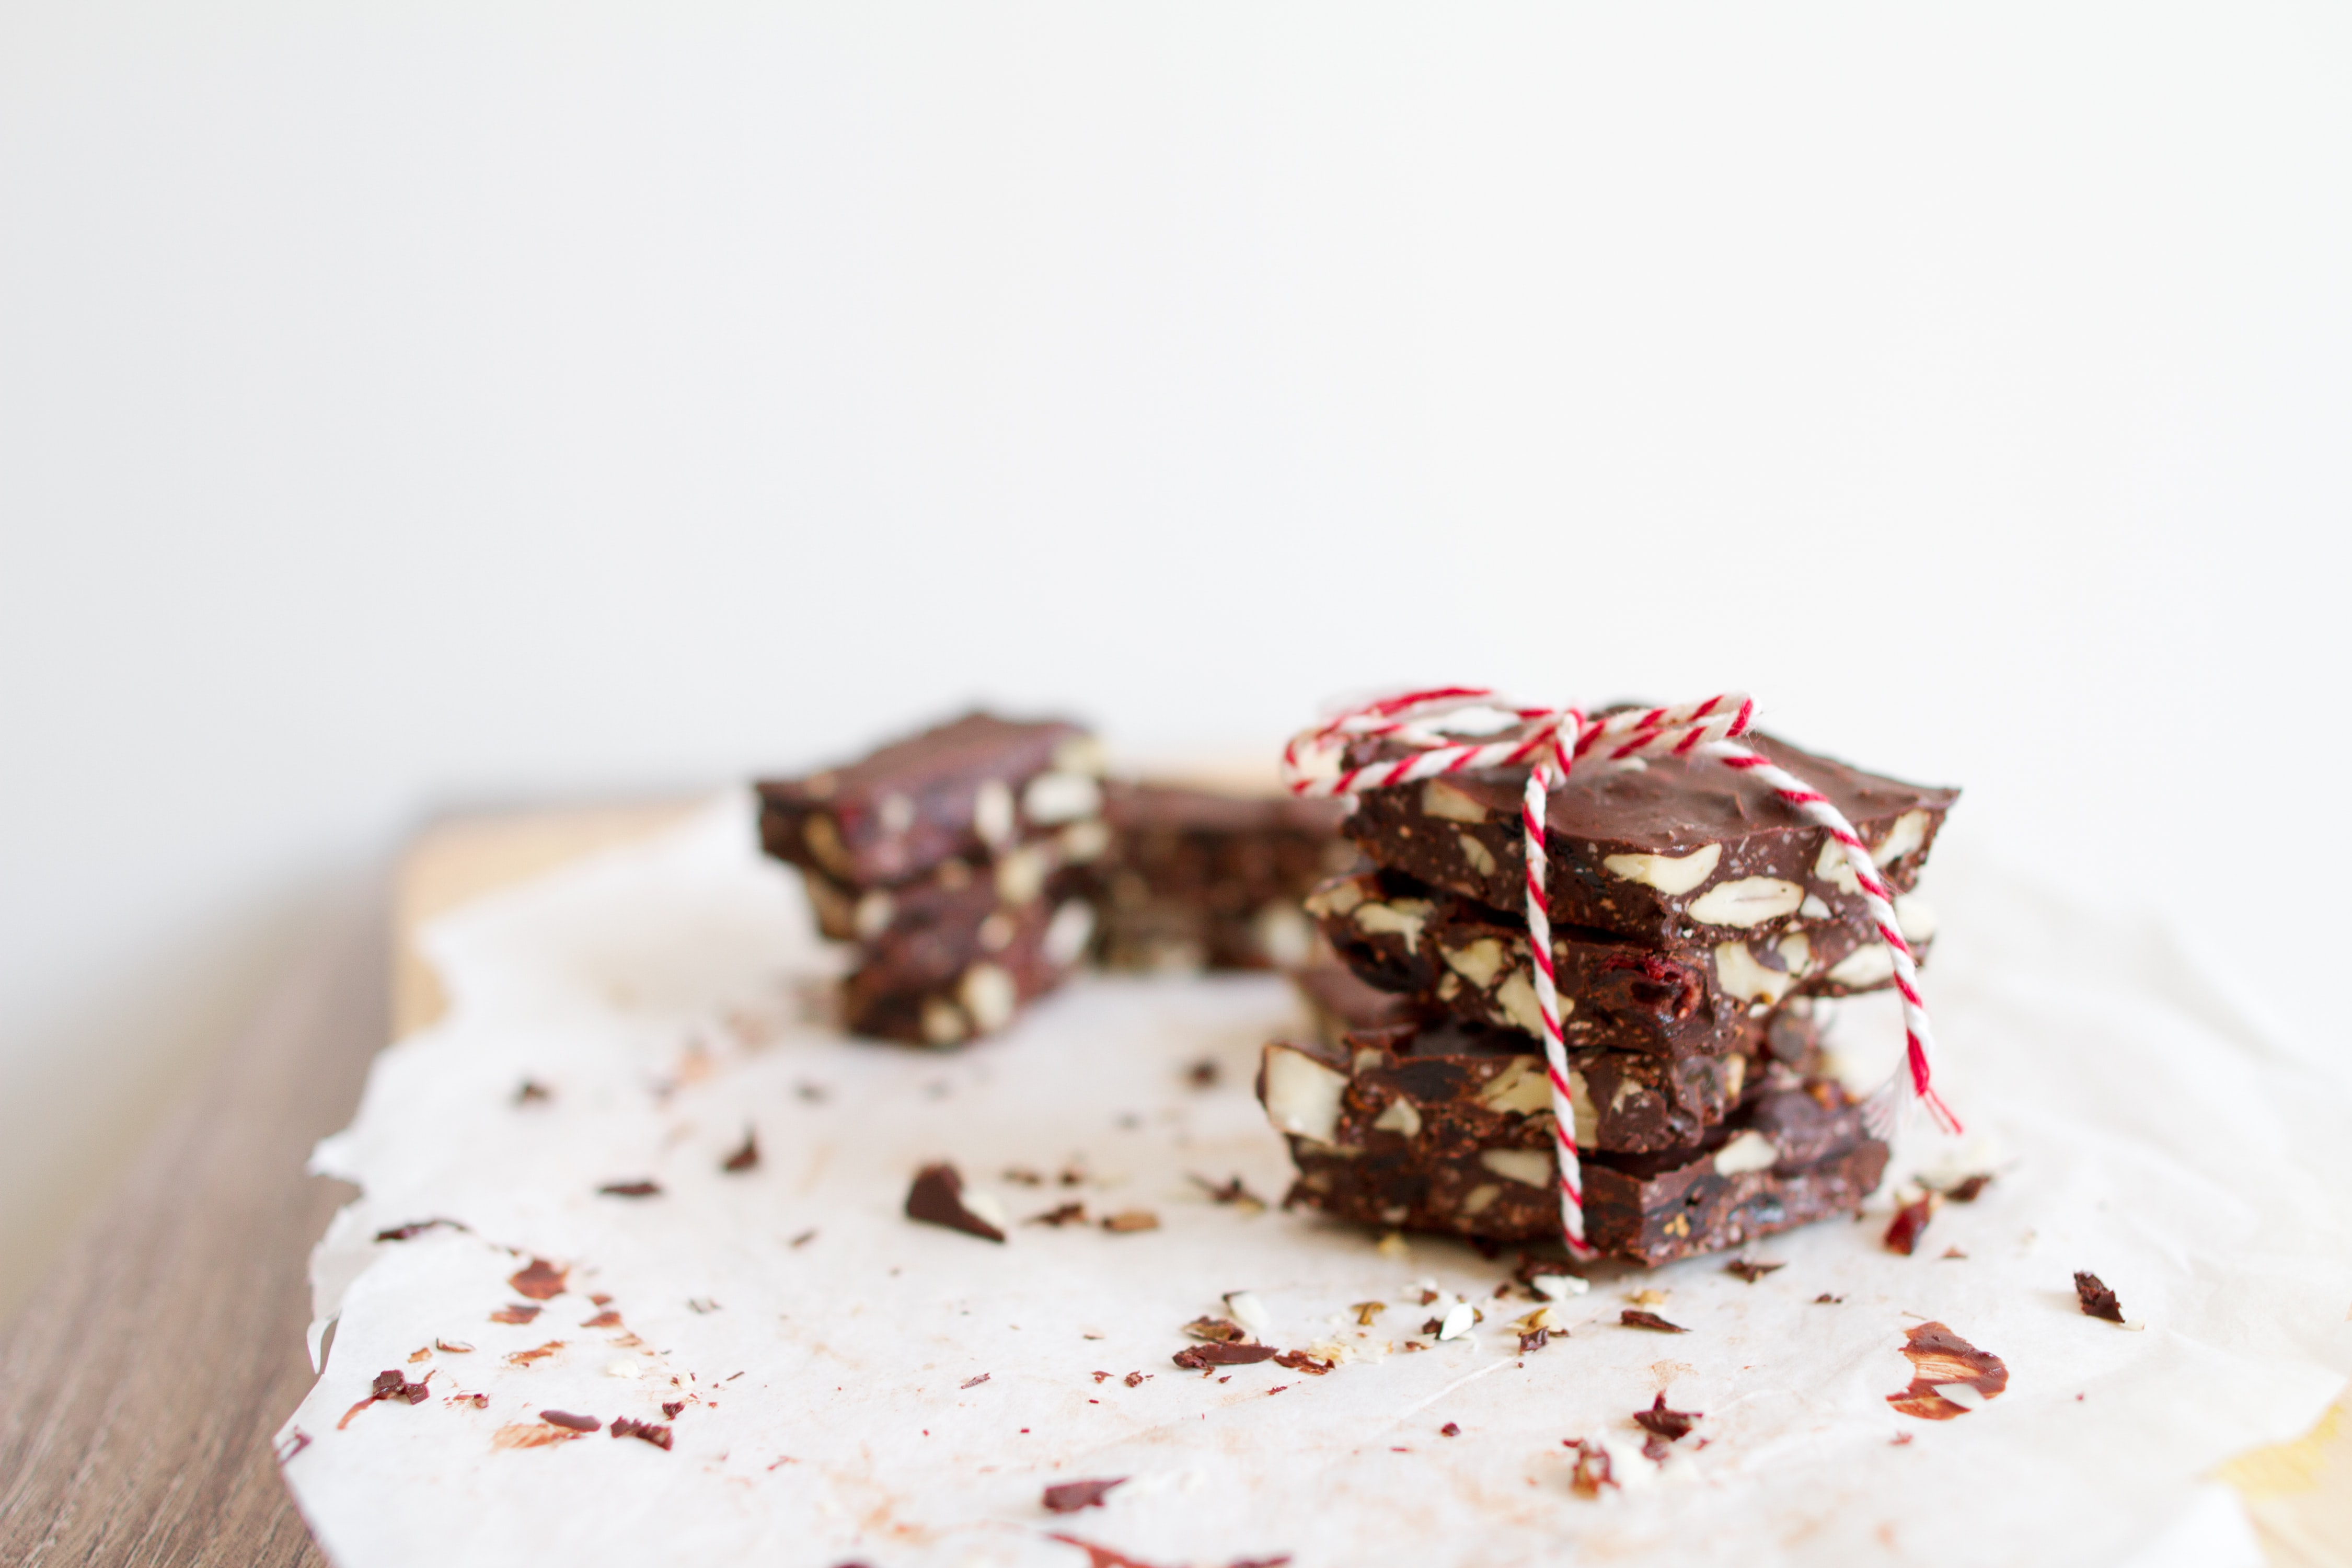 Peppermint, nut, chocolate bark tied together with red and white bakers twine